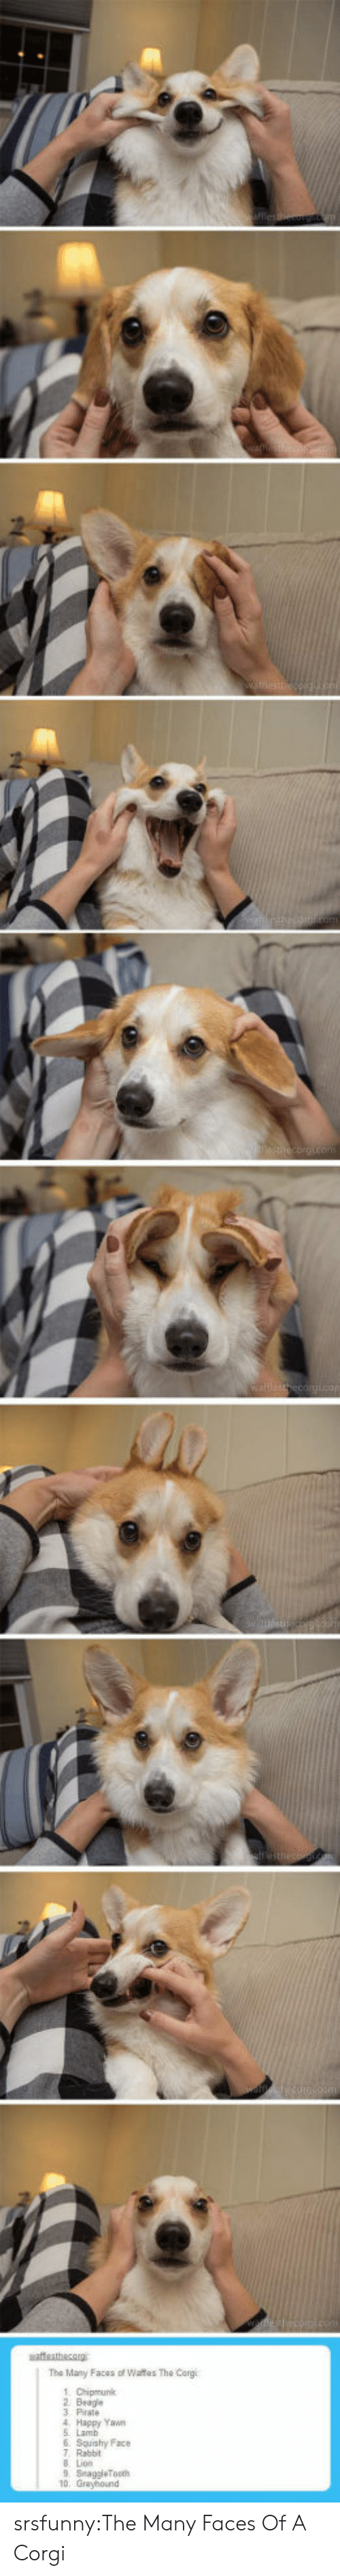 Corgi, Tumblr, and Blog: wattesthacorg srsfunny:The Many Faces Of A Corgi